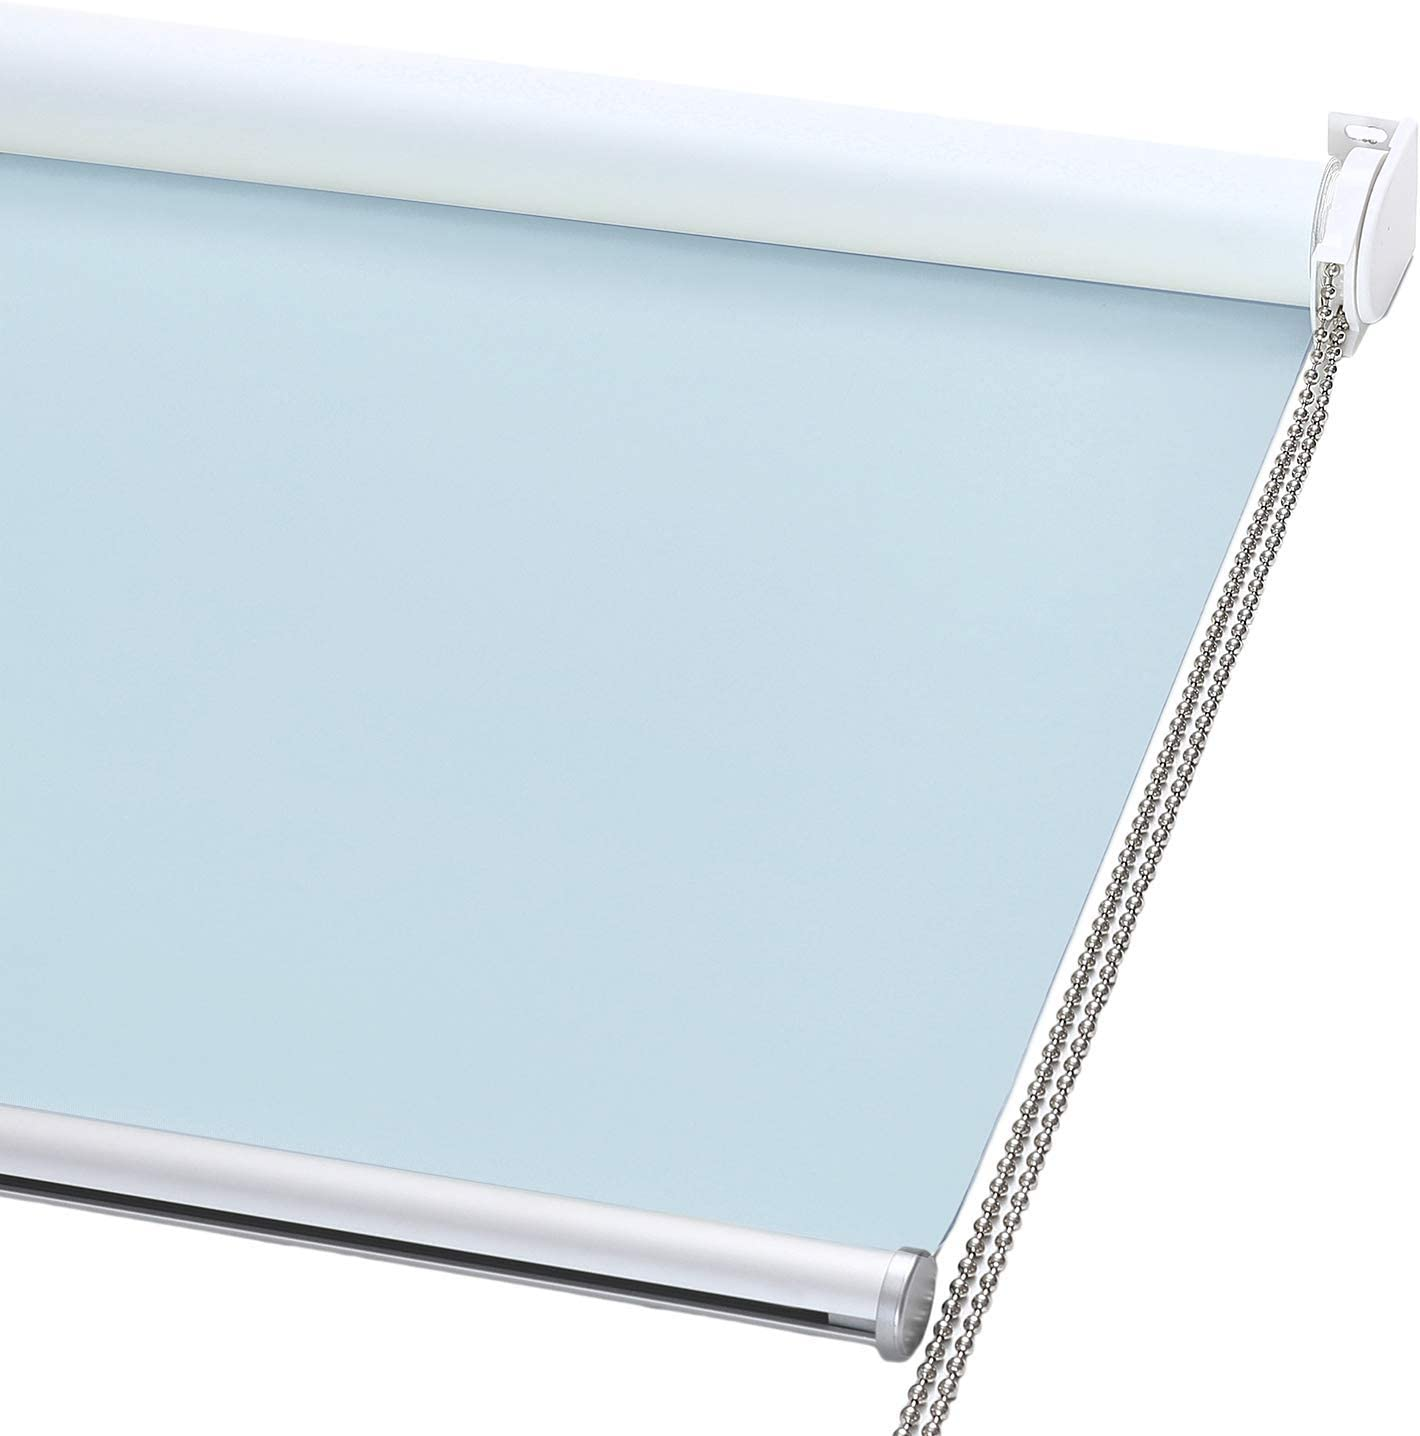 ChrisDowa 100% Blackout Roller Max 72% Cash special price OFF Shade Thermal Blind with Window